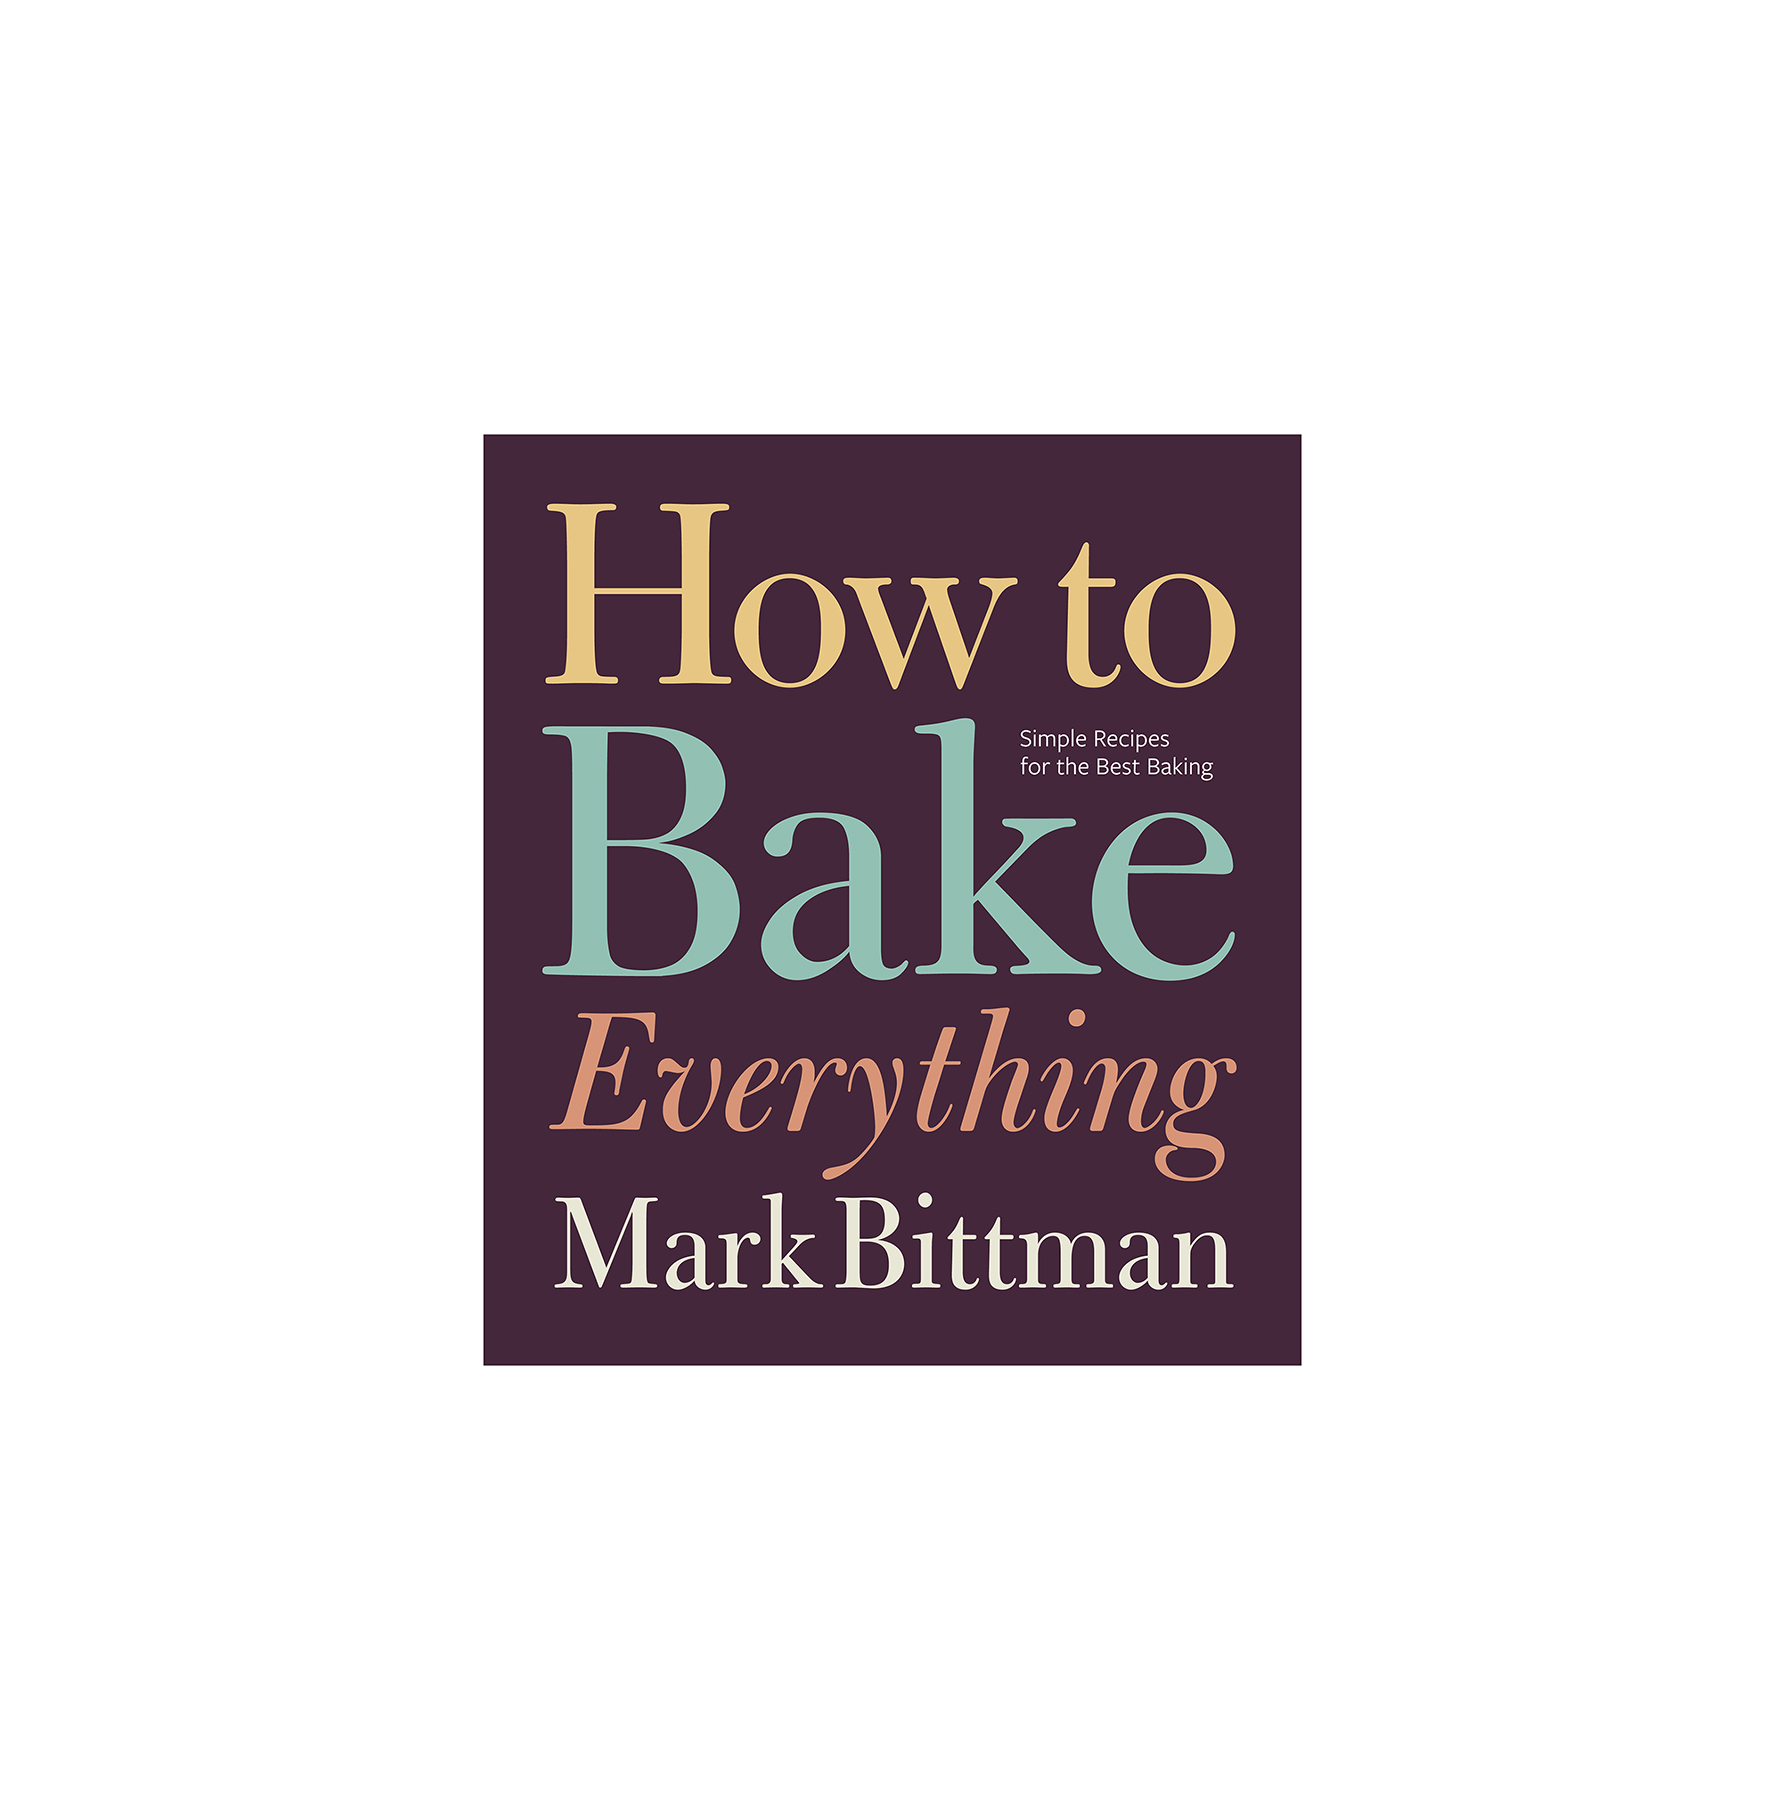 How to Bake Everything, by Mark Bittman